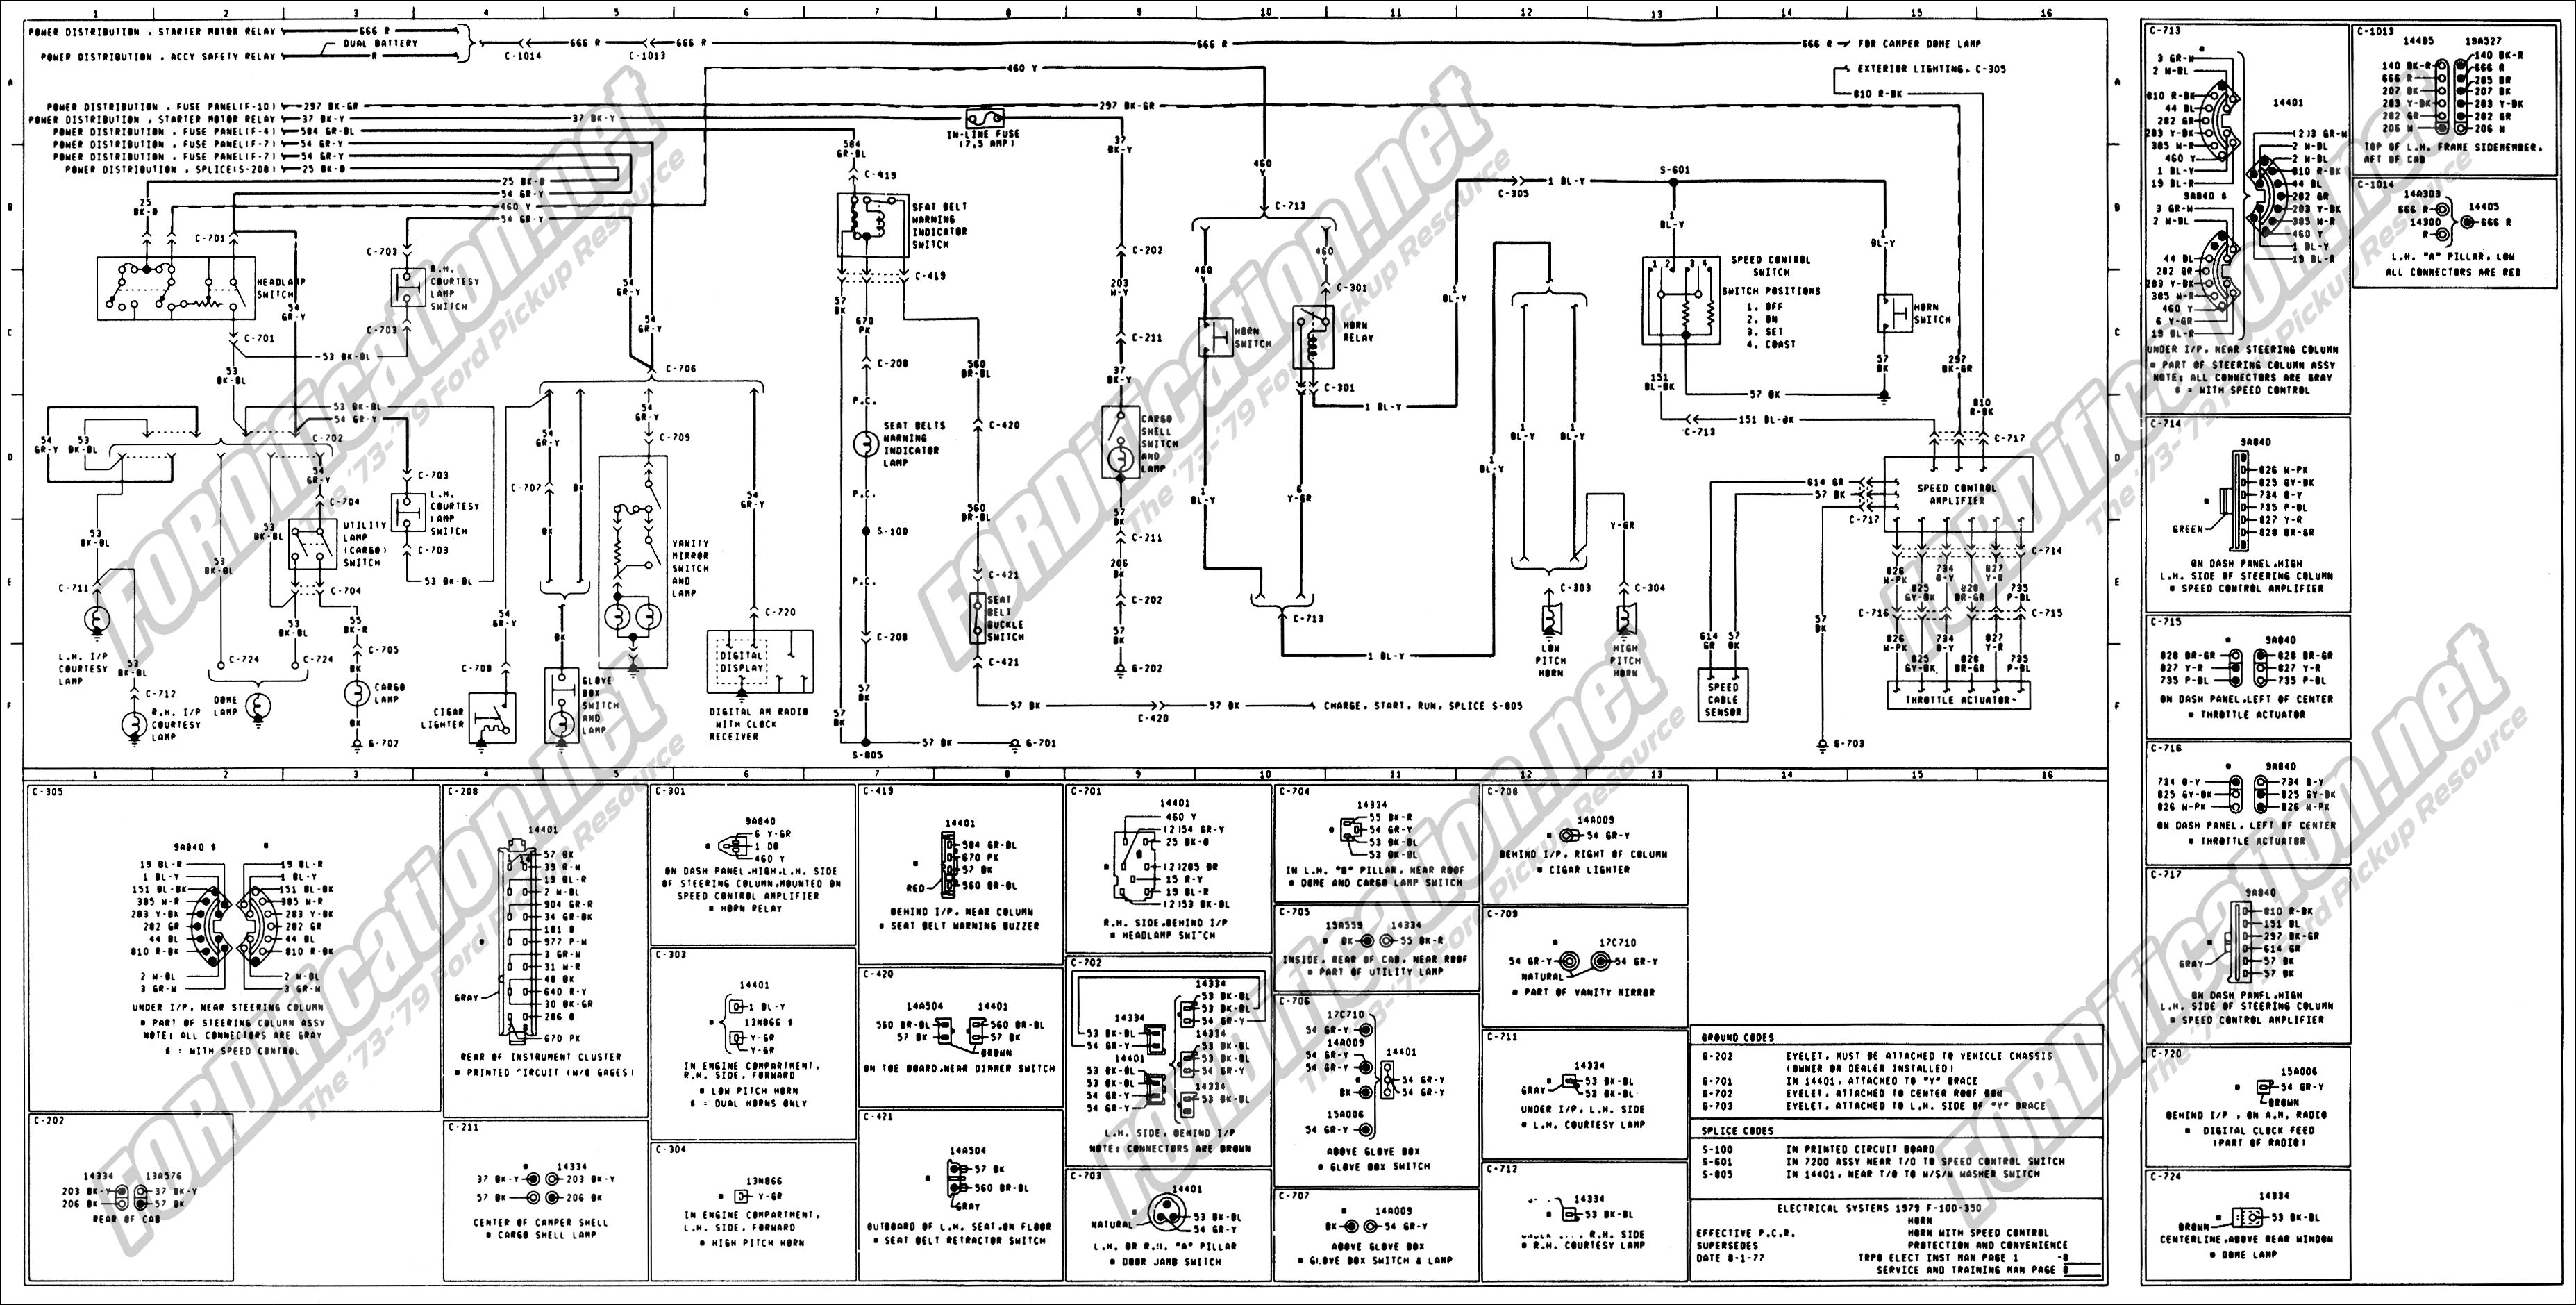 1973 1979 ford truck wiring diagrams schematics fordification net rh fordification net 02 F250 Fuse Panel Diagram 2012 Ford F250 Super Duty Fuse Diagram